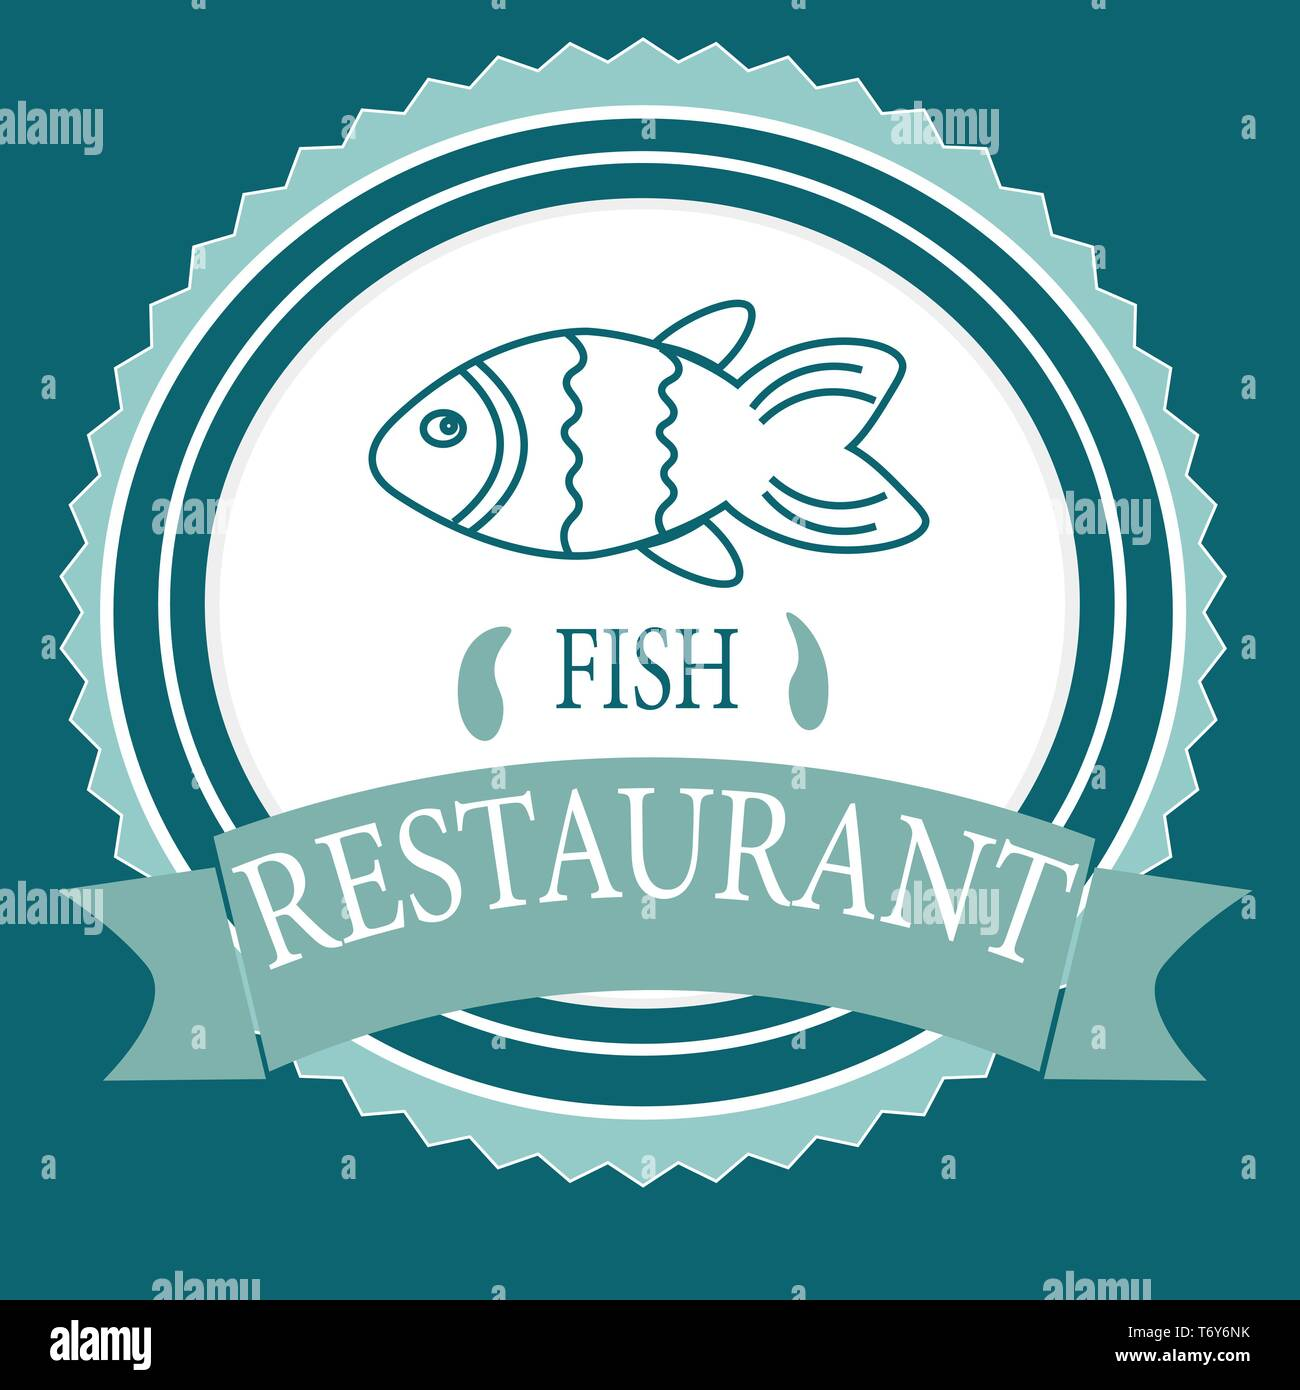 Vector Logo Banner For Advertising Restaurant Name Blue Turquoise Color With Fish And Text Inscription Stock Vector Image Art Alamy